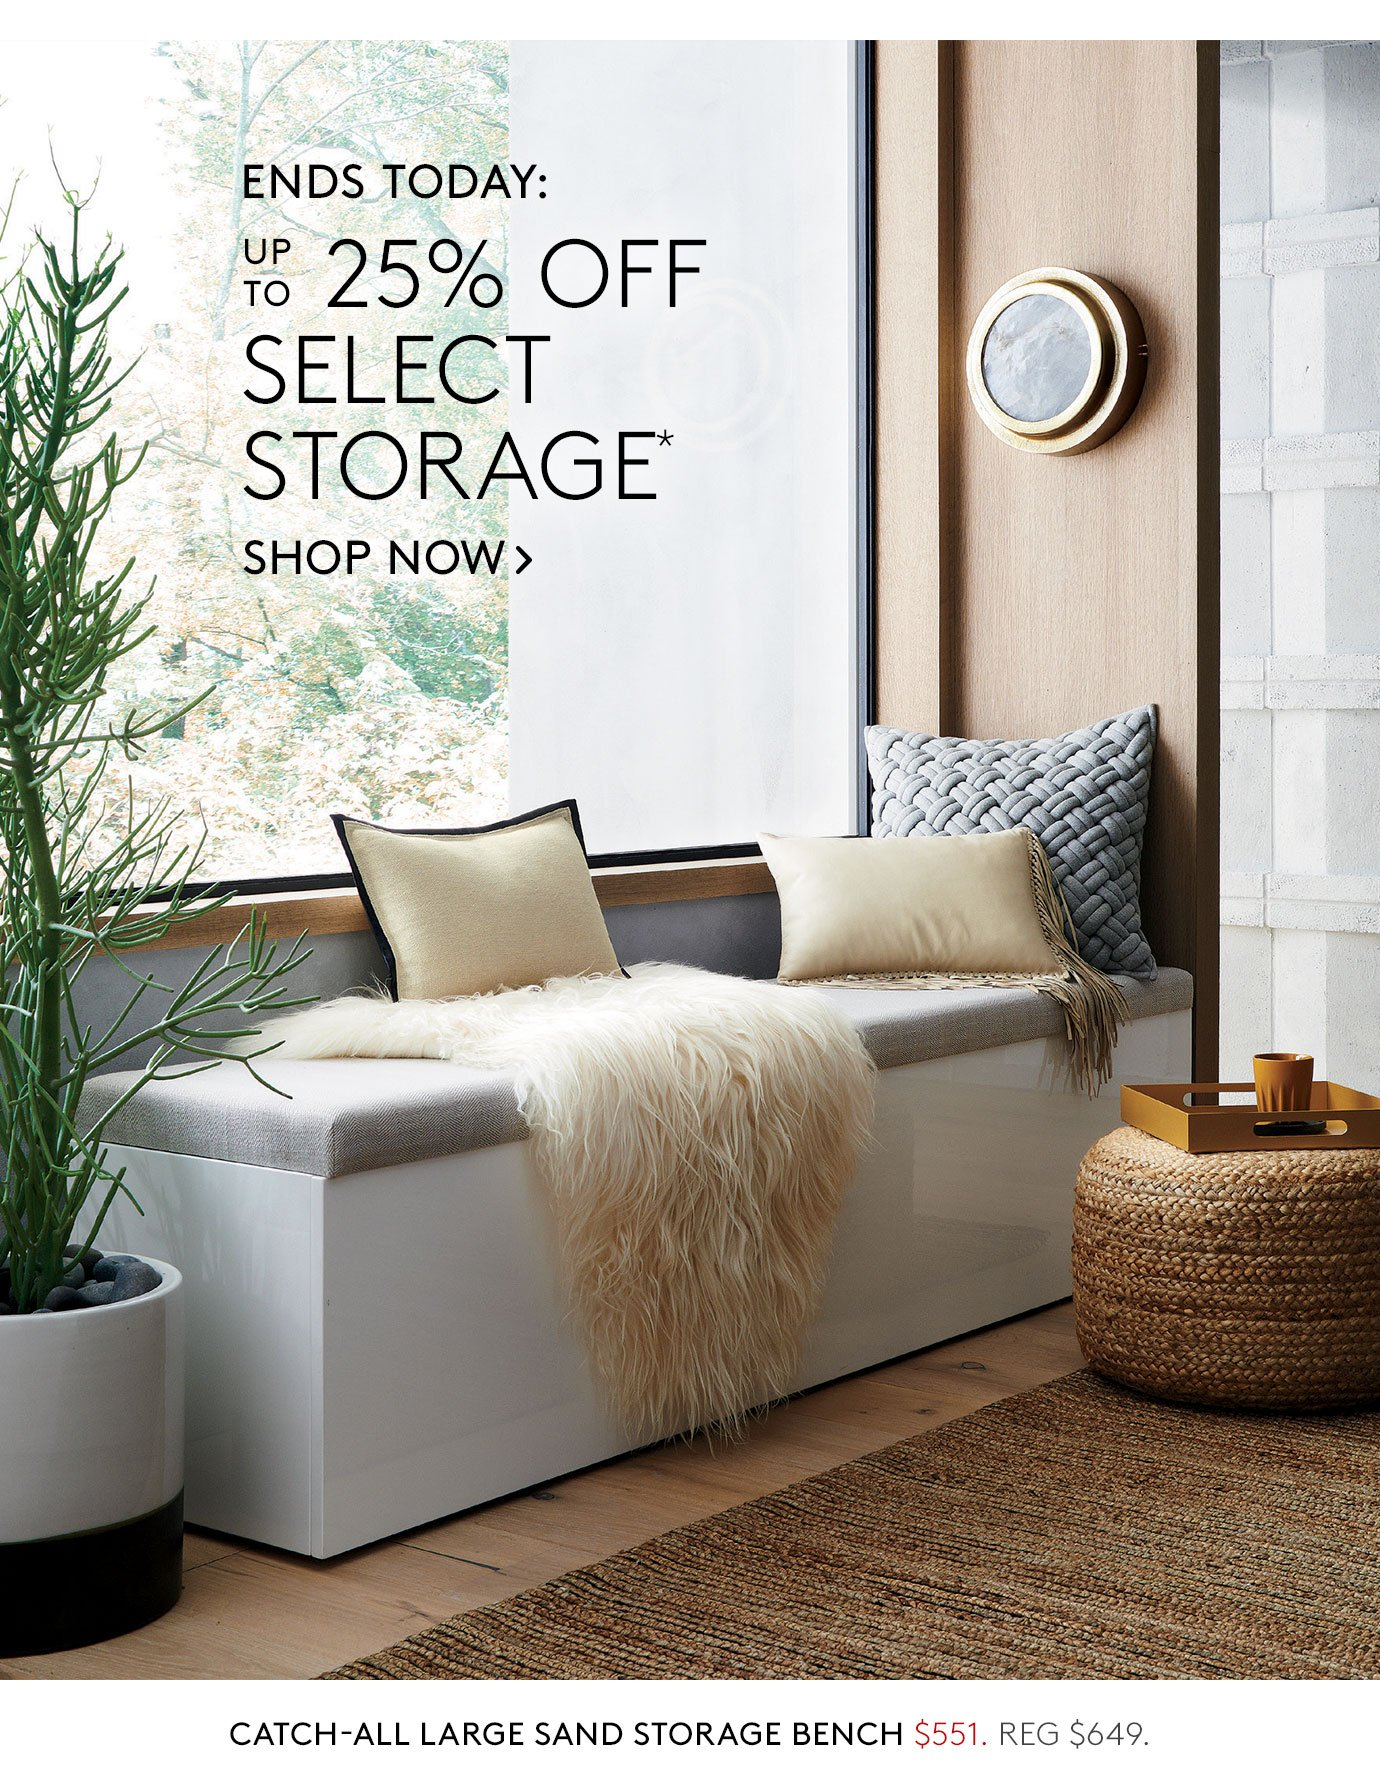 Ends Today: Up To 25% Off Select Storage